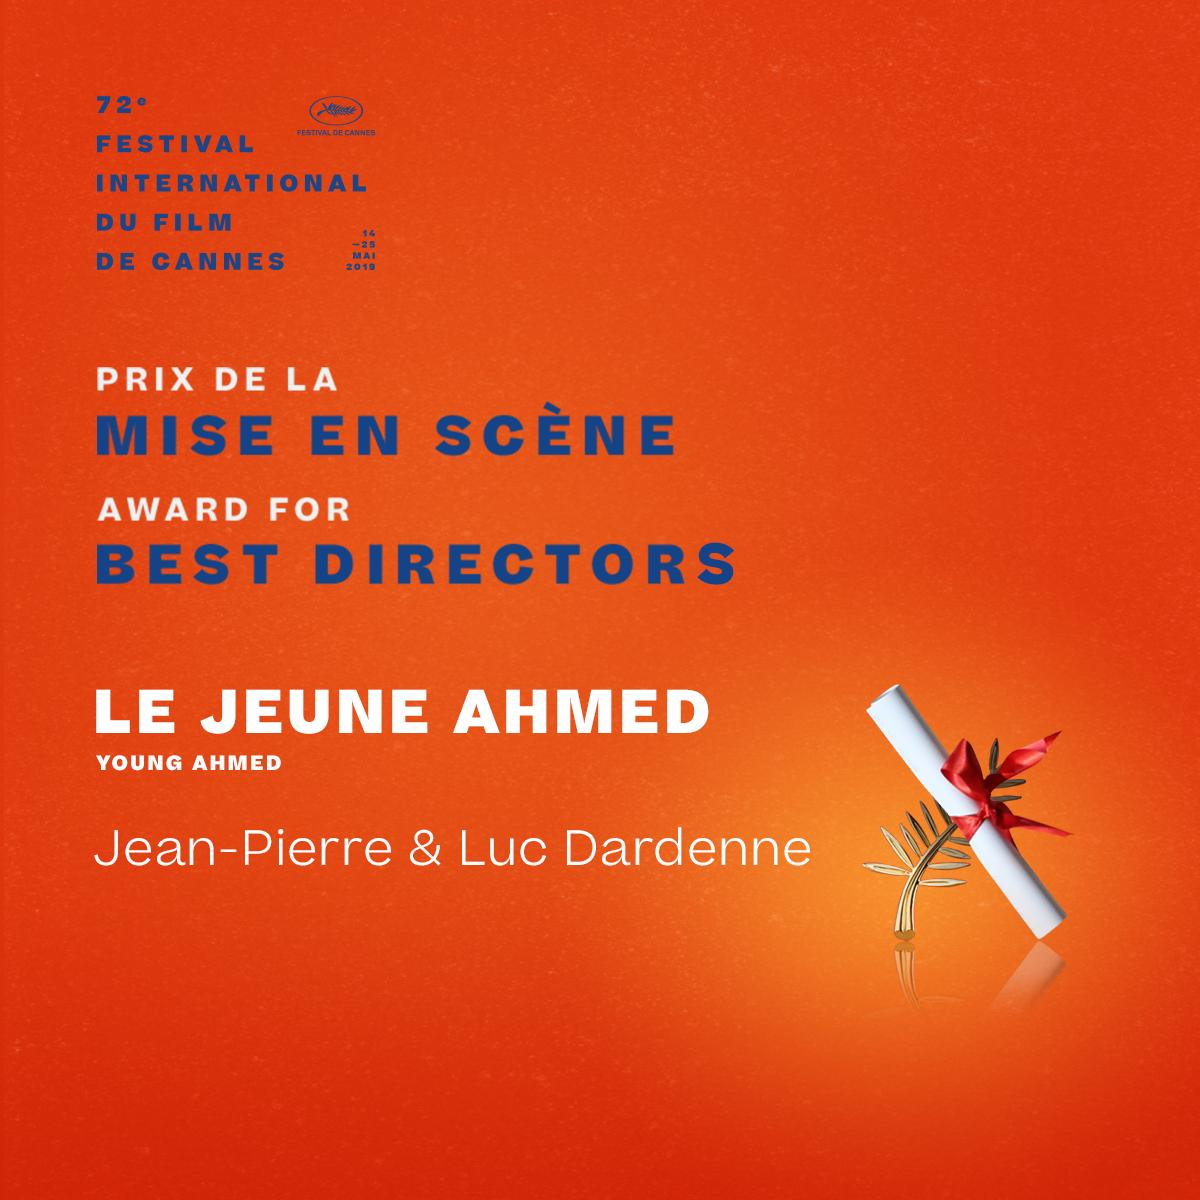 The Award for Best Directors goes to… #LeJeuneAhmed by Jean-Pierre & Luc Dardenne  #Cannes2019 #Awards https://t.co/jnlLNMU7Pq